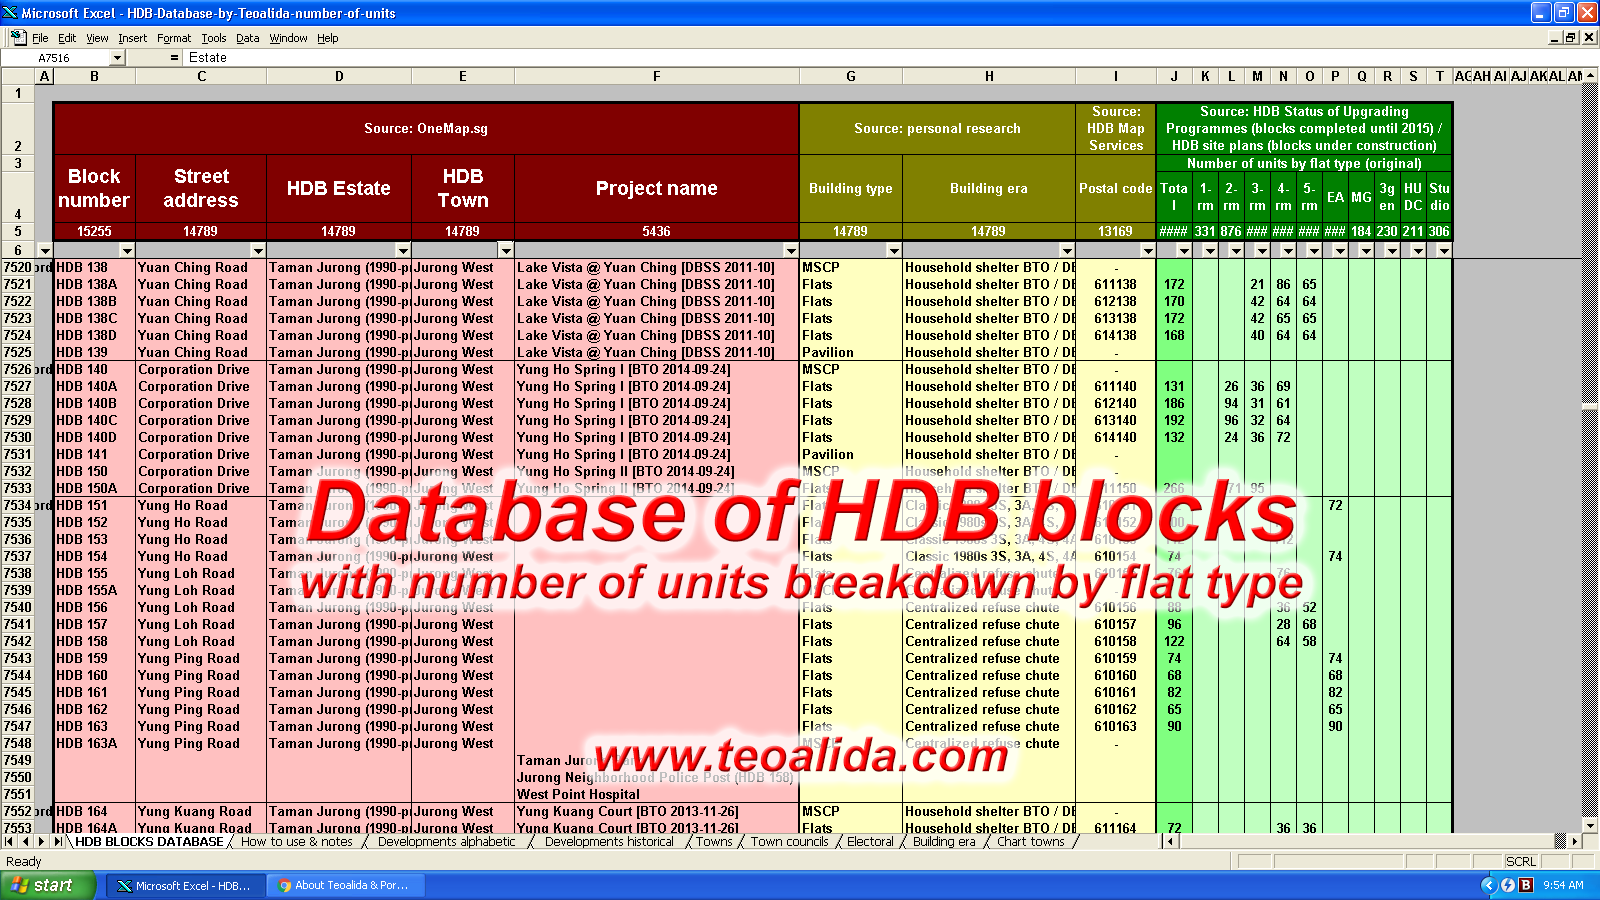 HDB Database, block number, street address, postal code, number of units breakdown by flat type